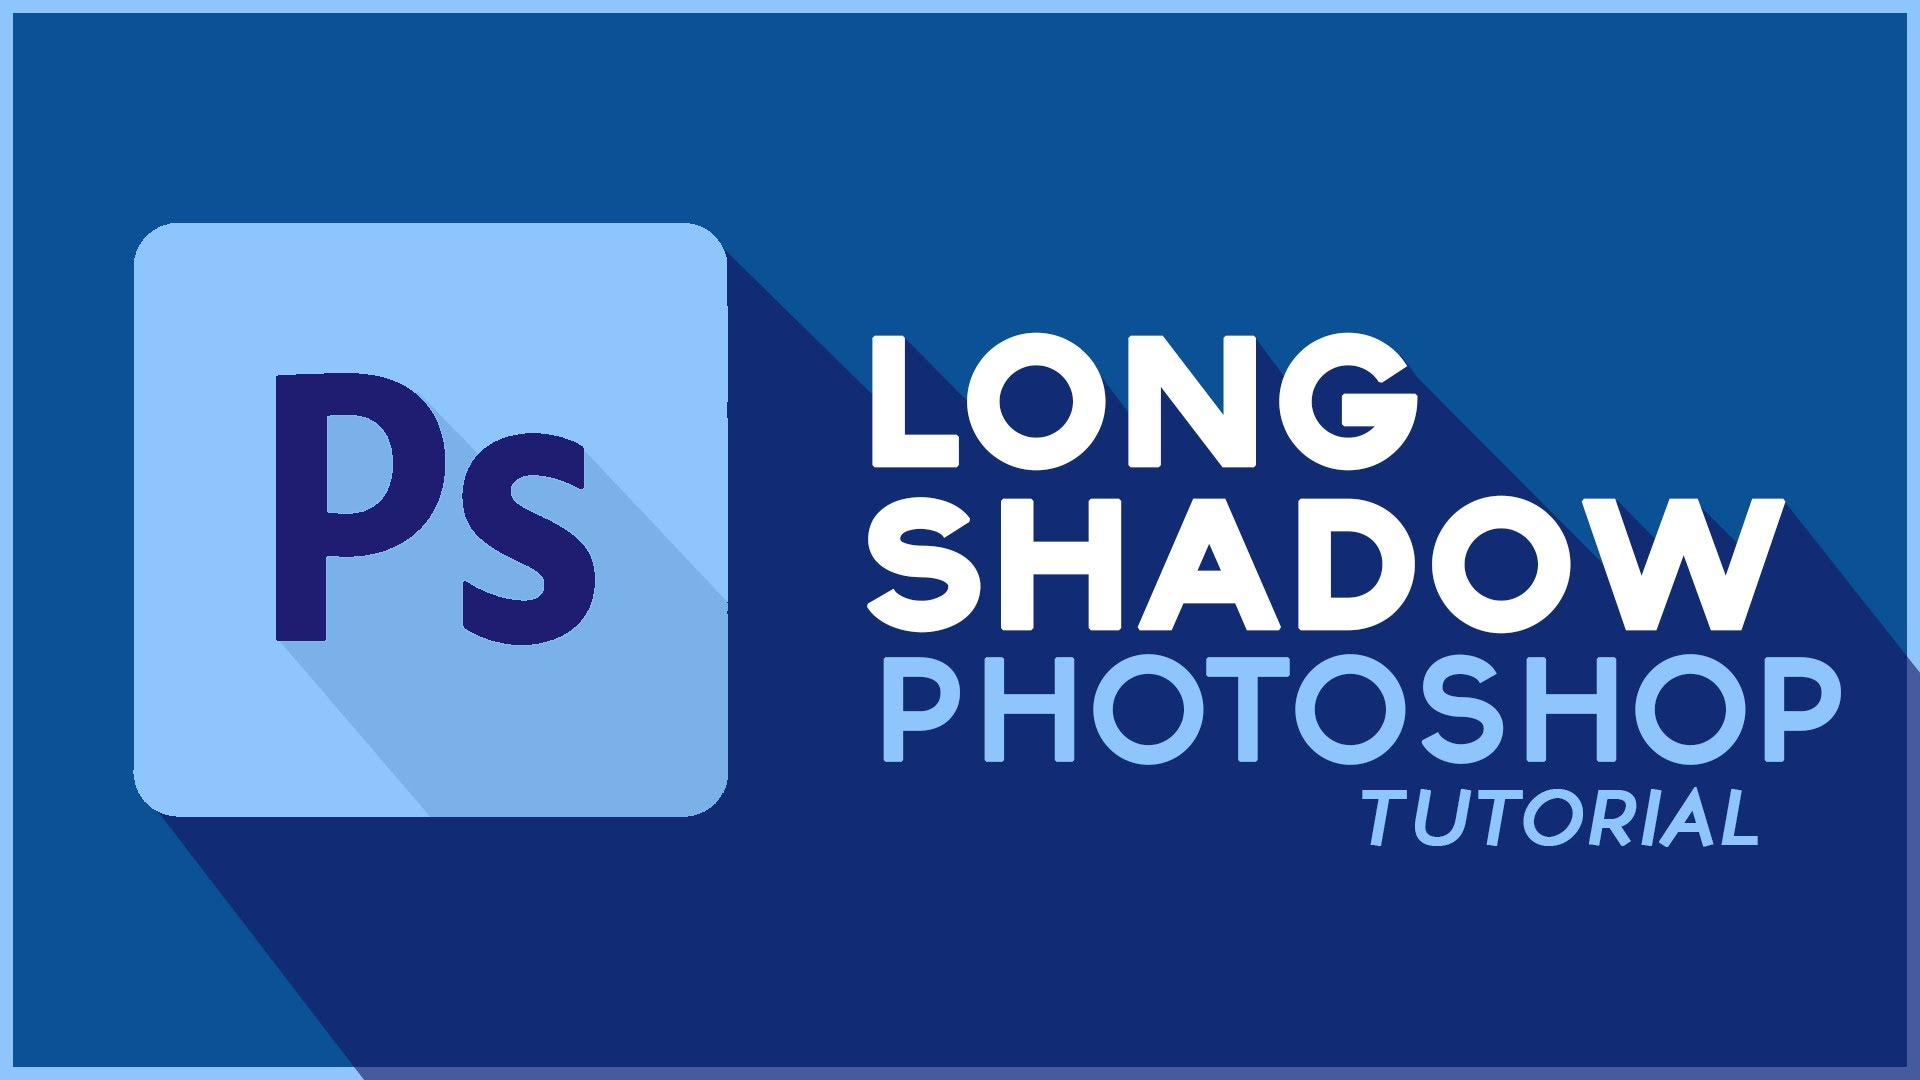 long shadow en photoshop diseños creativos